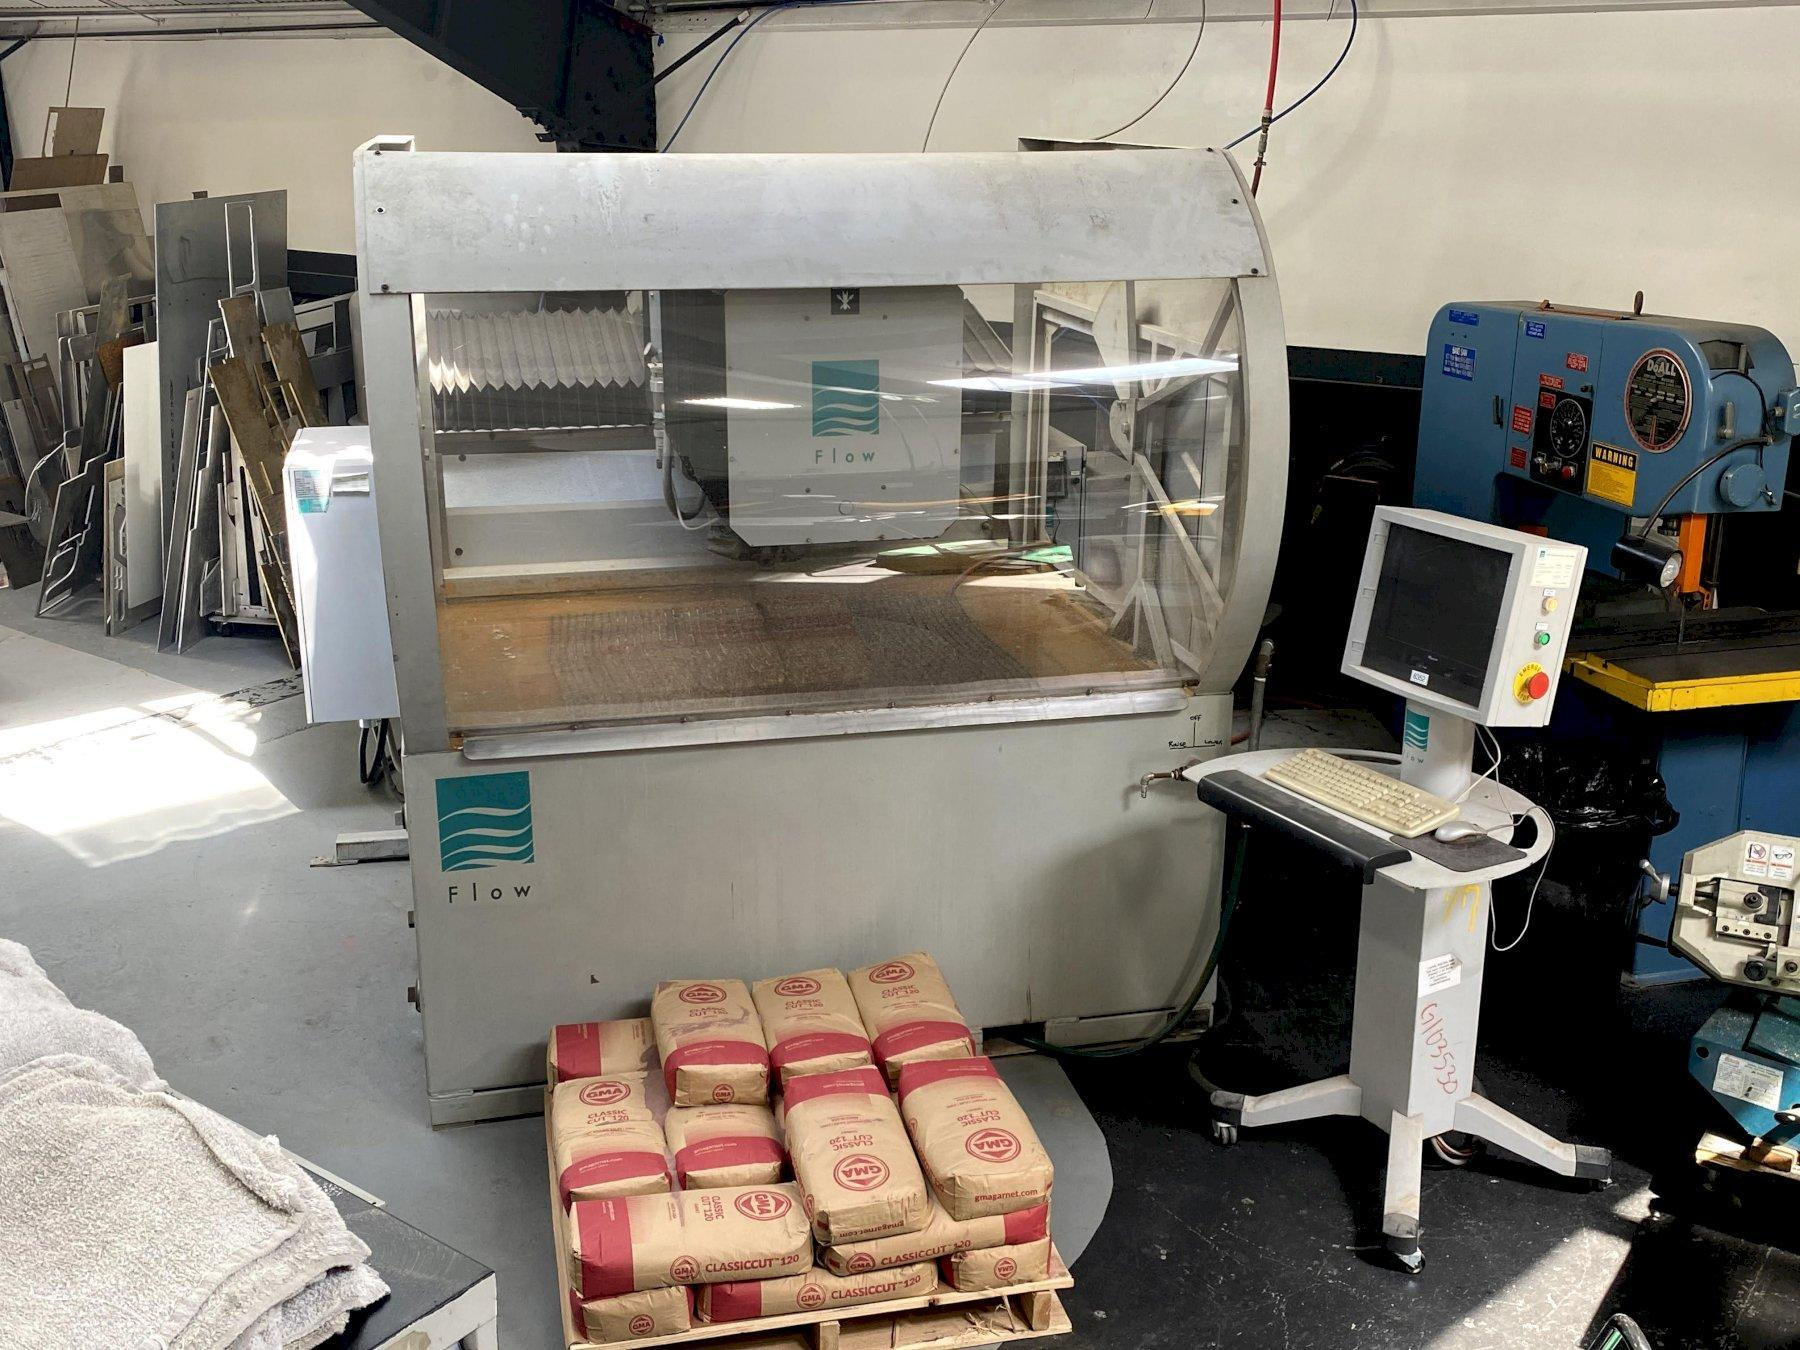 FLOWFlow IFB 4400 - Upgraded by Flow and in excellent condition!